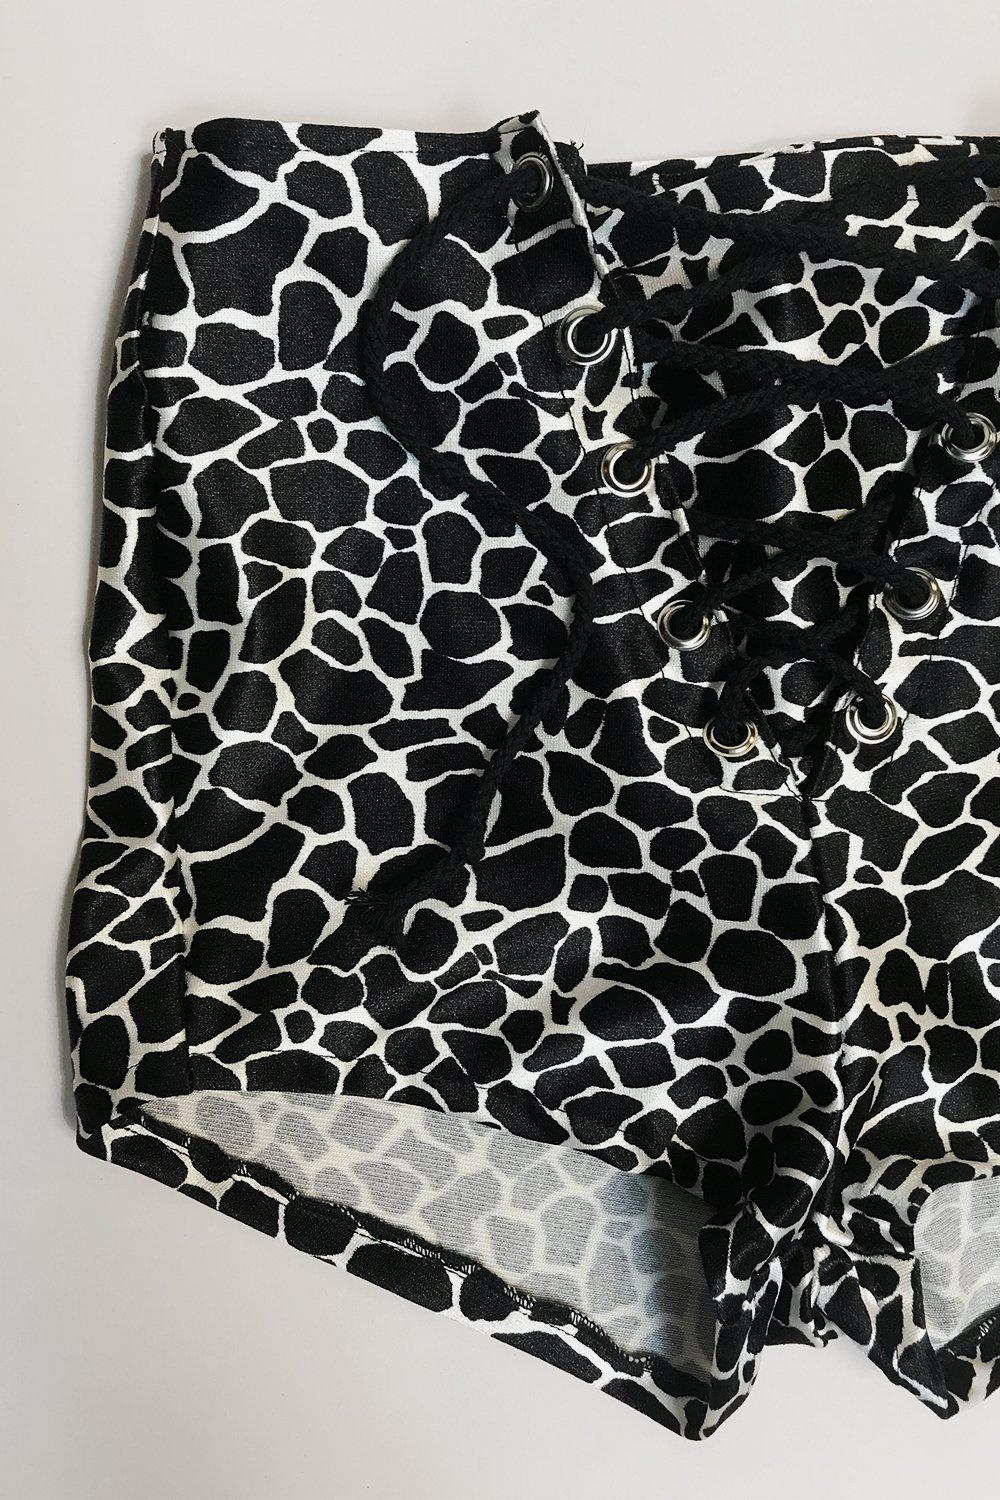 Nylon Spandex Grommet Shorts・Wild Animal, bottoms, BAD VIBES, BACKBITE